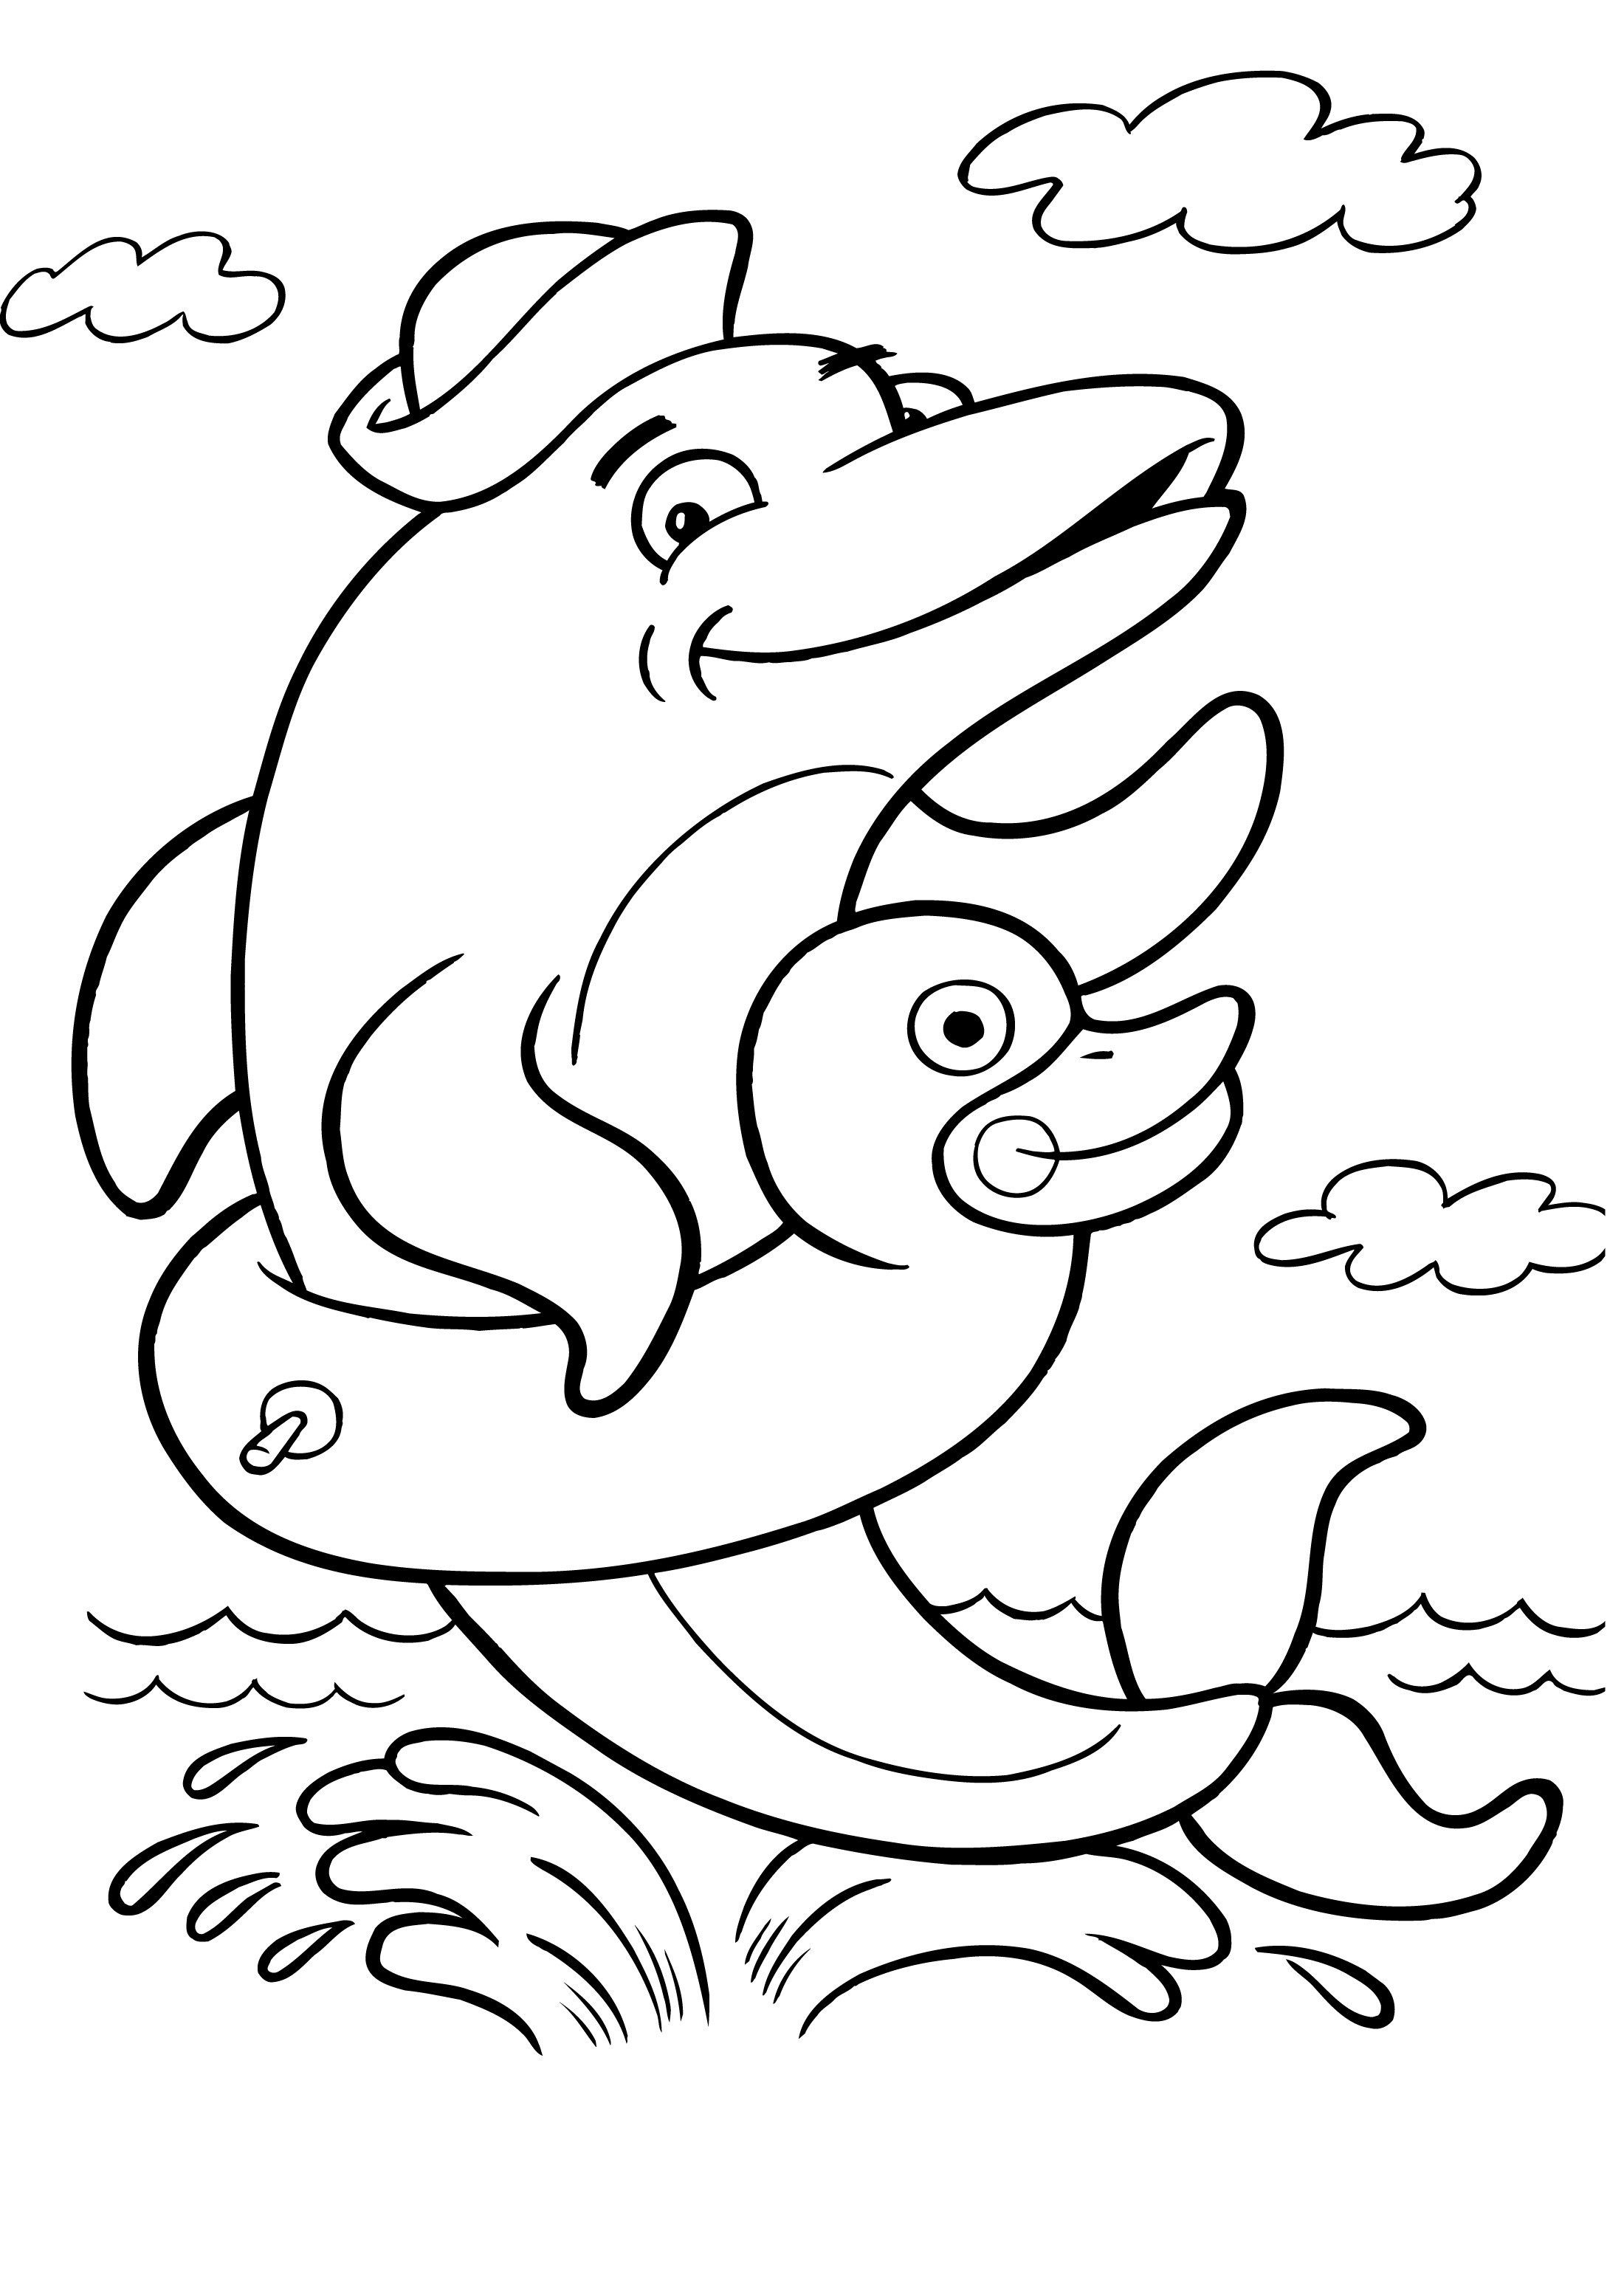 dolphin pictures to colour and print free dolphin clipart printable coloring pages outline pictures and dolphin colour print to